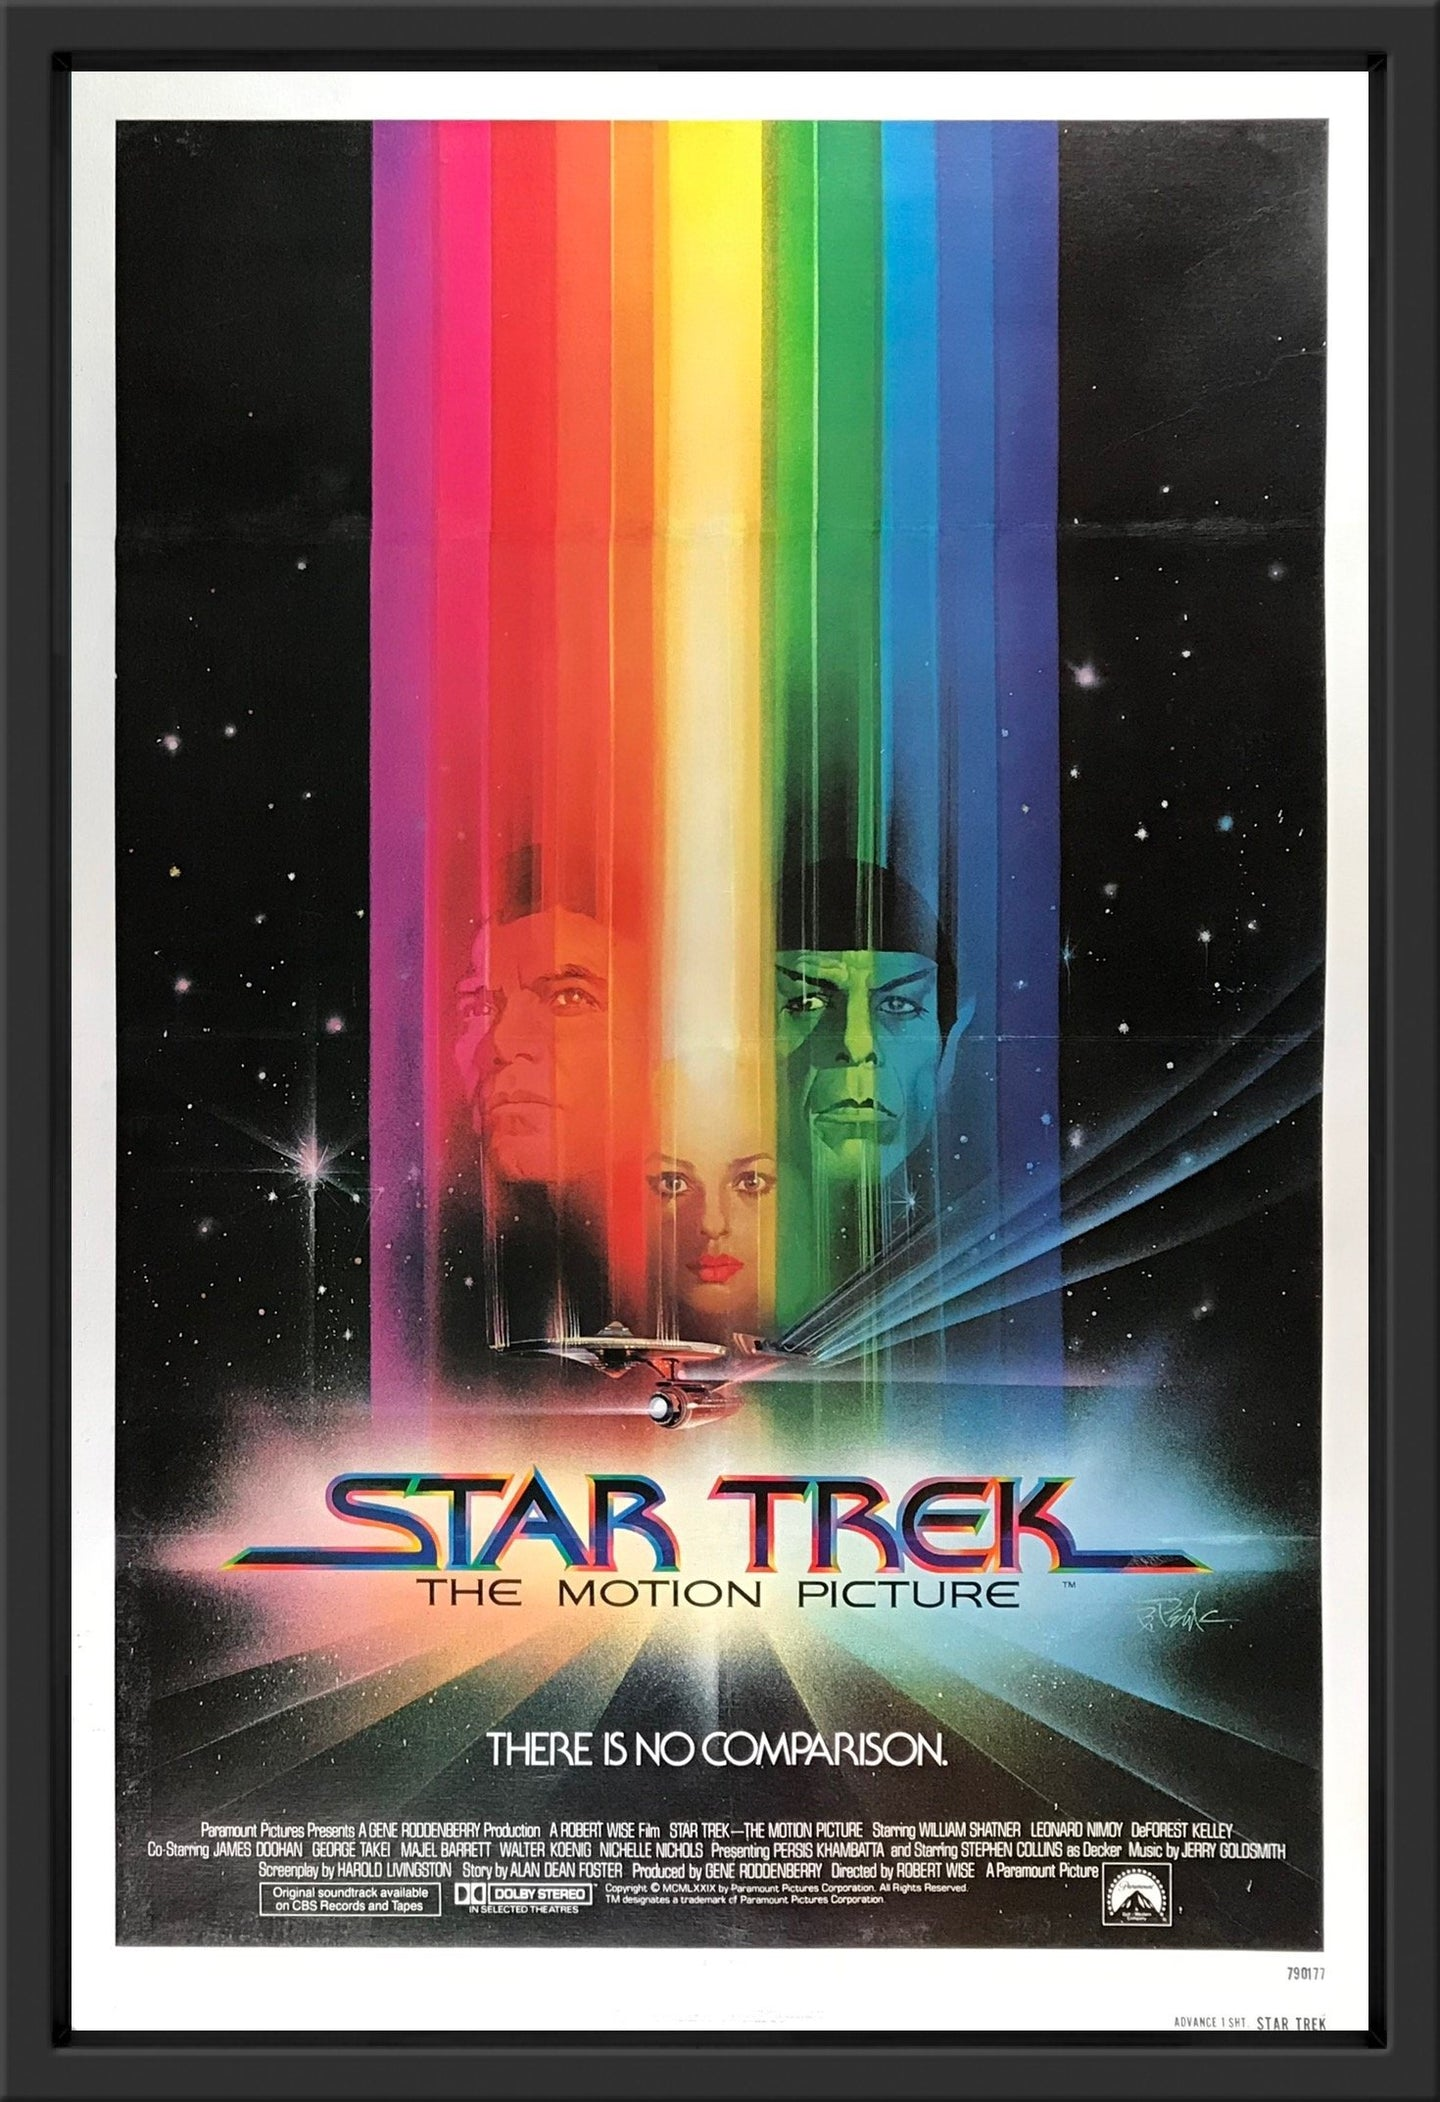 An original movie poster for the film Star Trek The Motion Picture